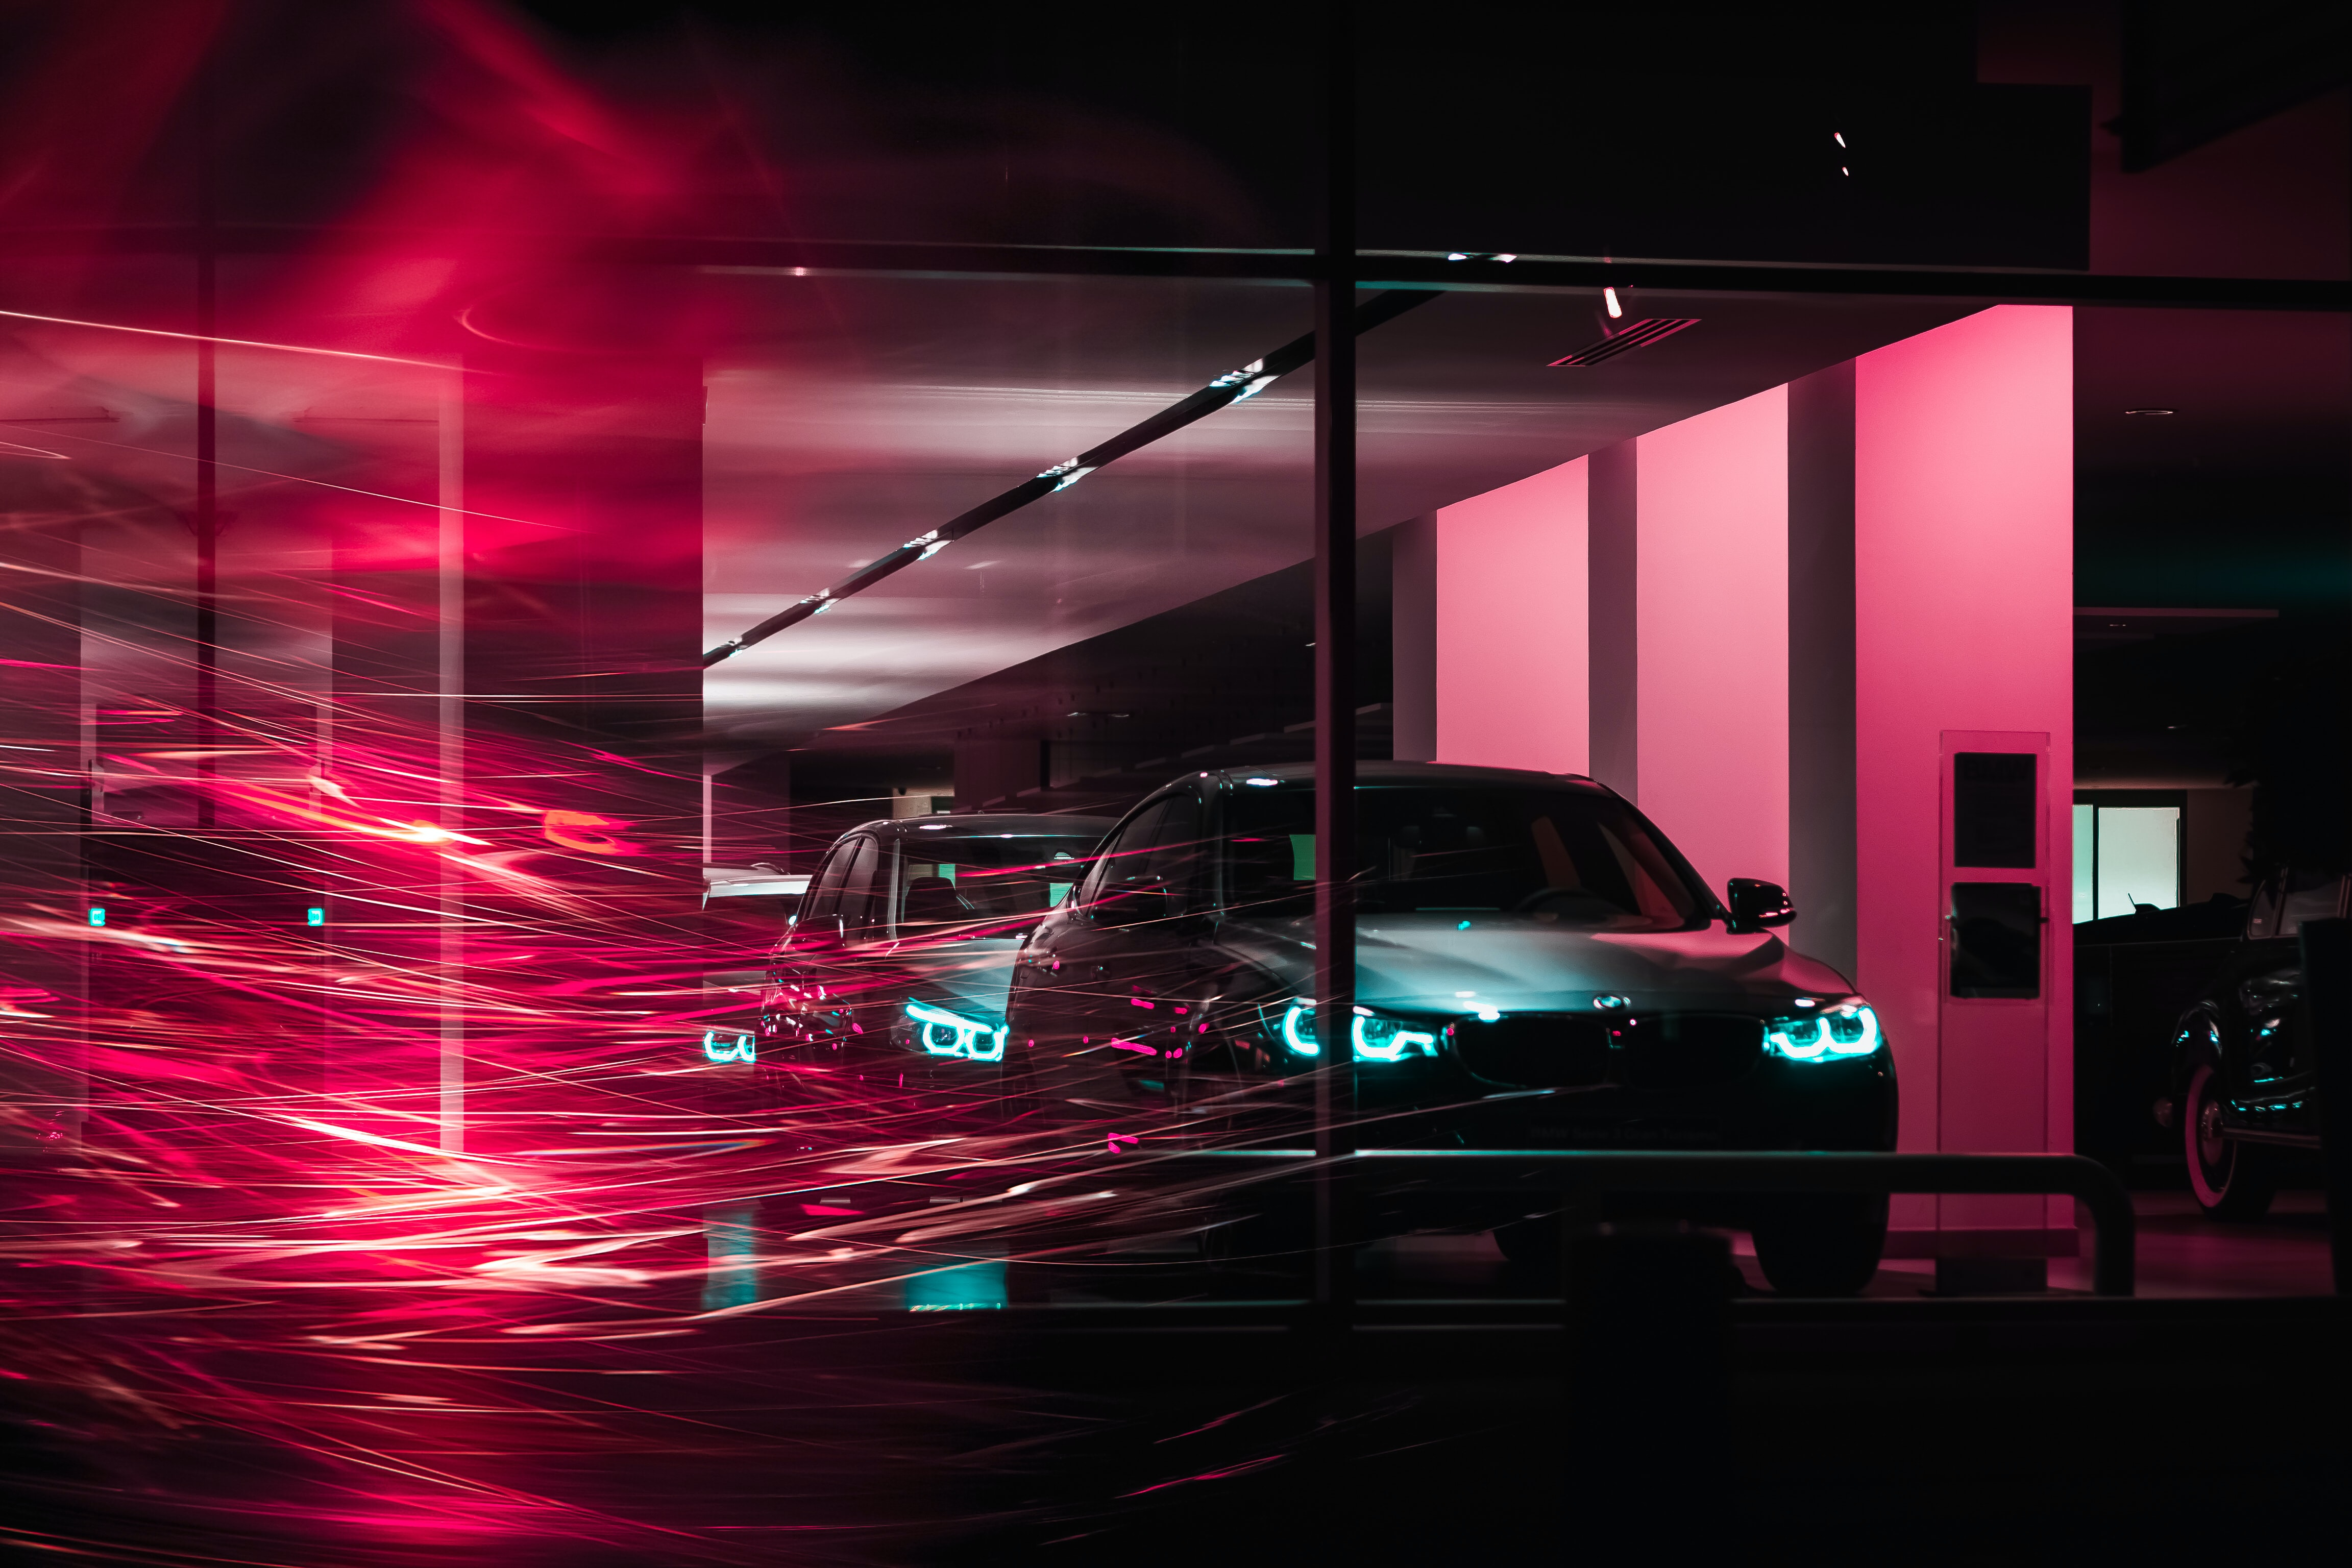 photography of two cars inside building